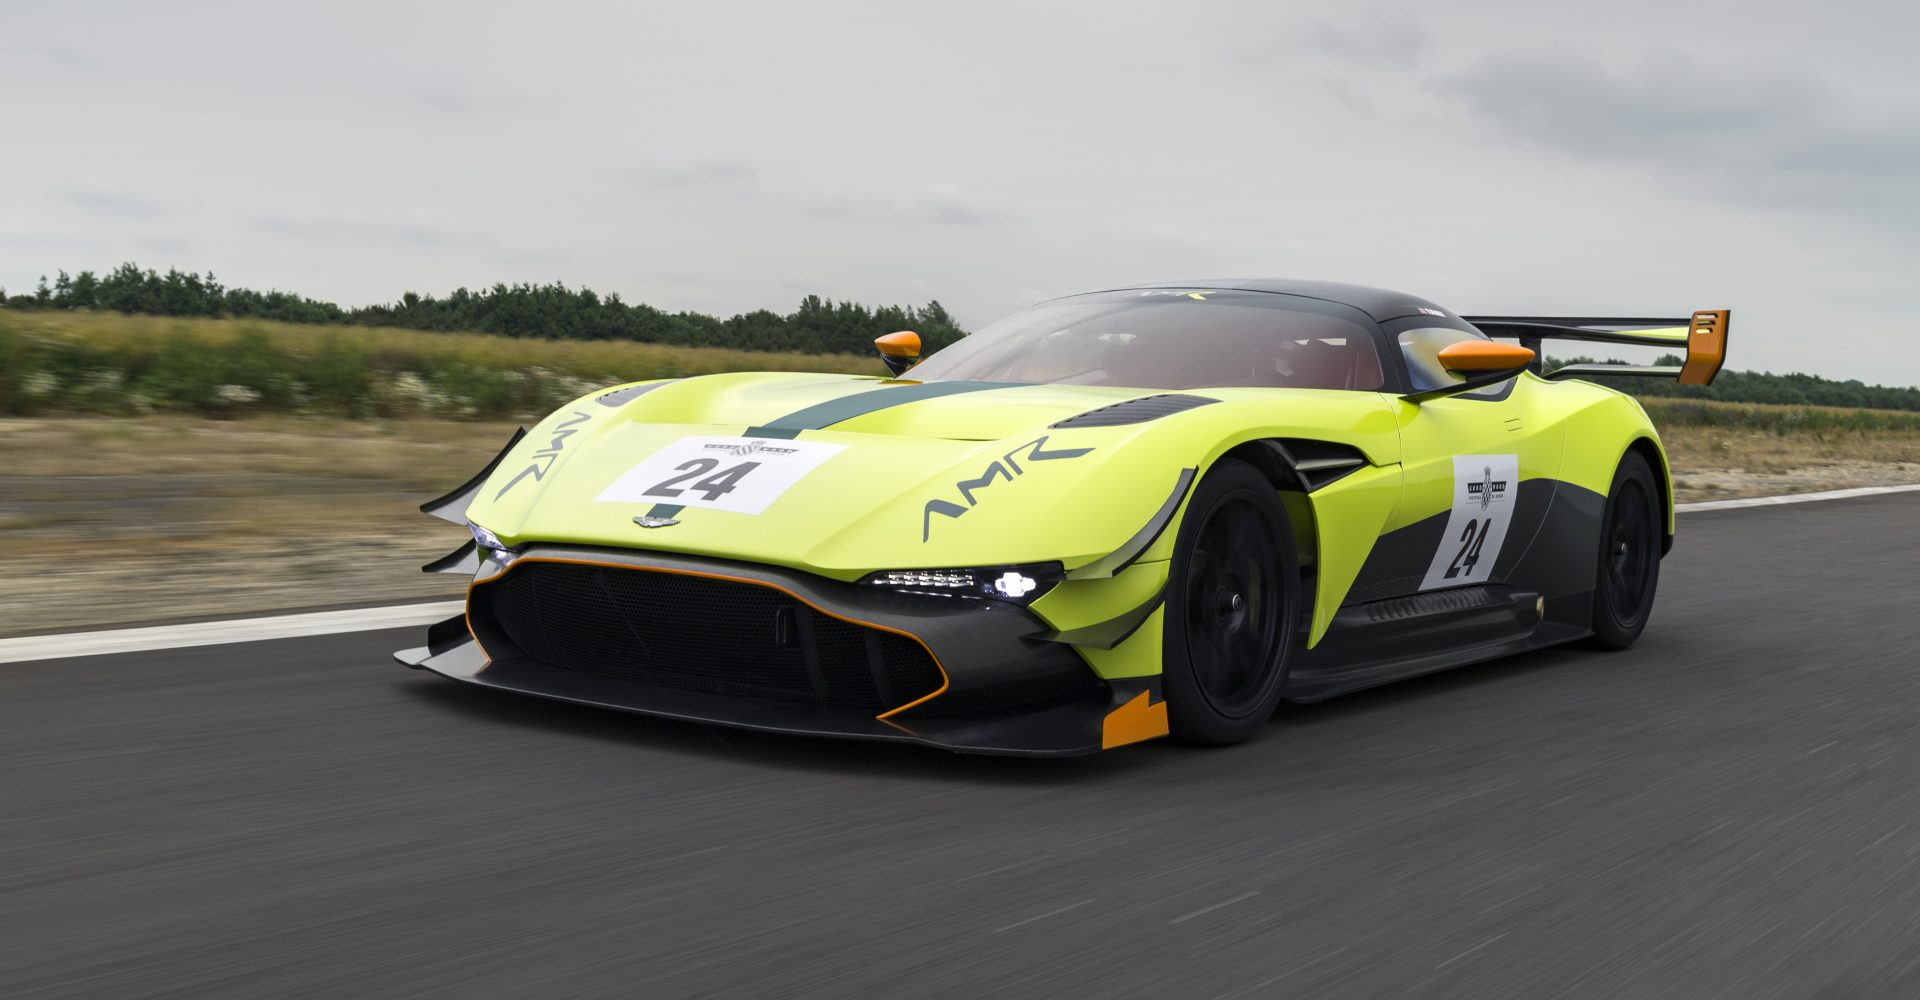 The Aston Martin Vulcan gets even more extreme